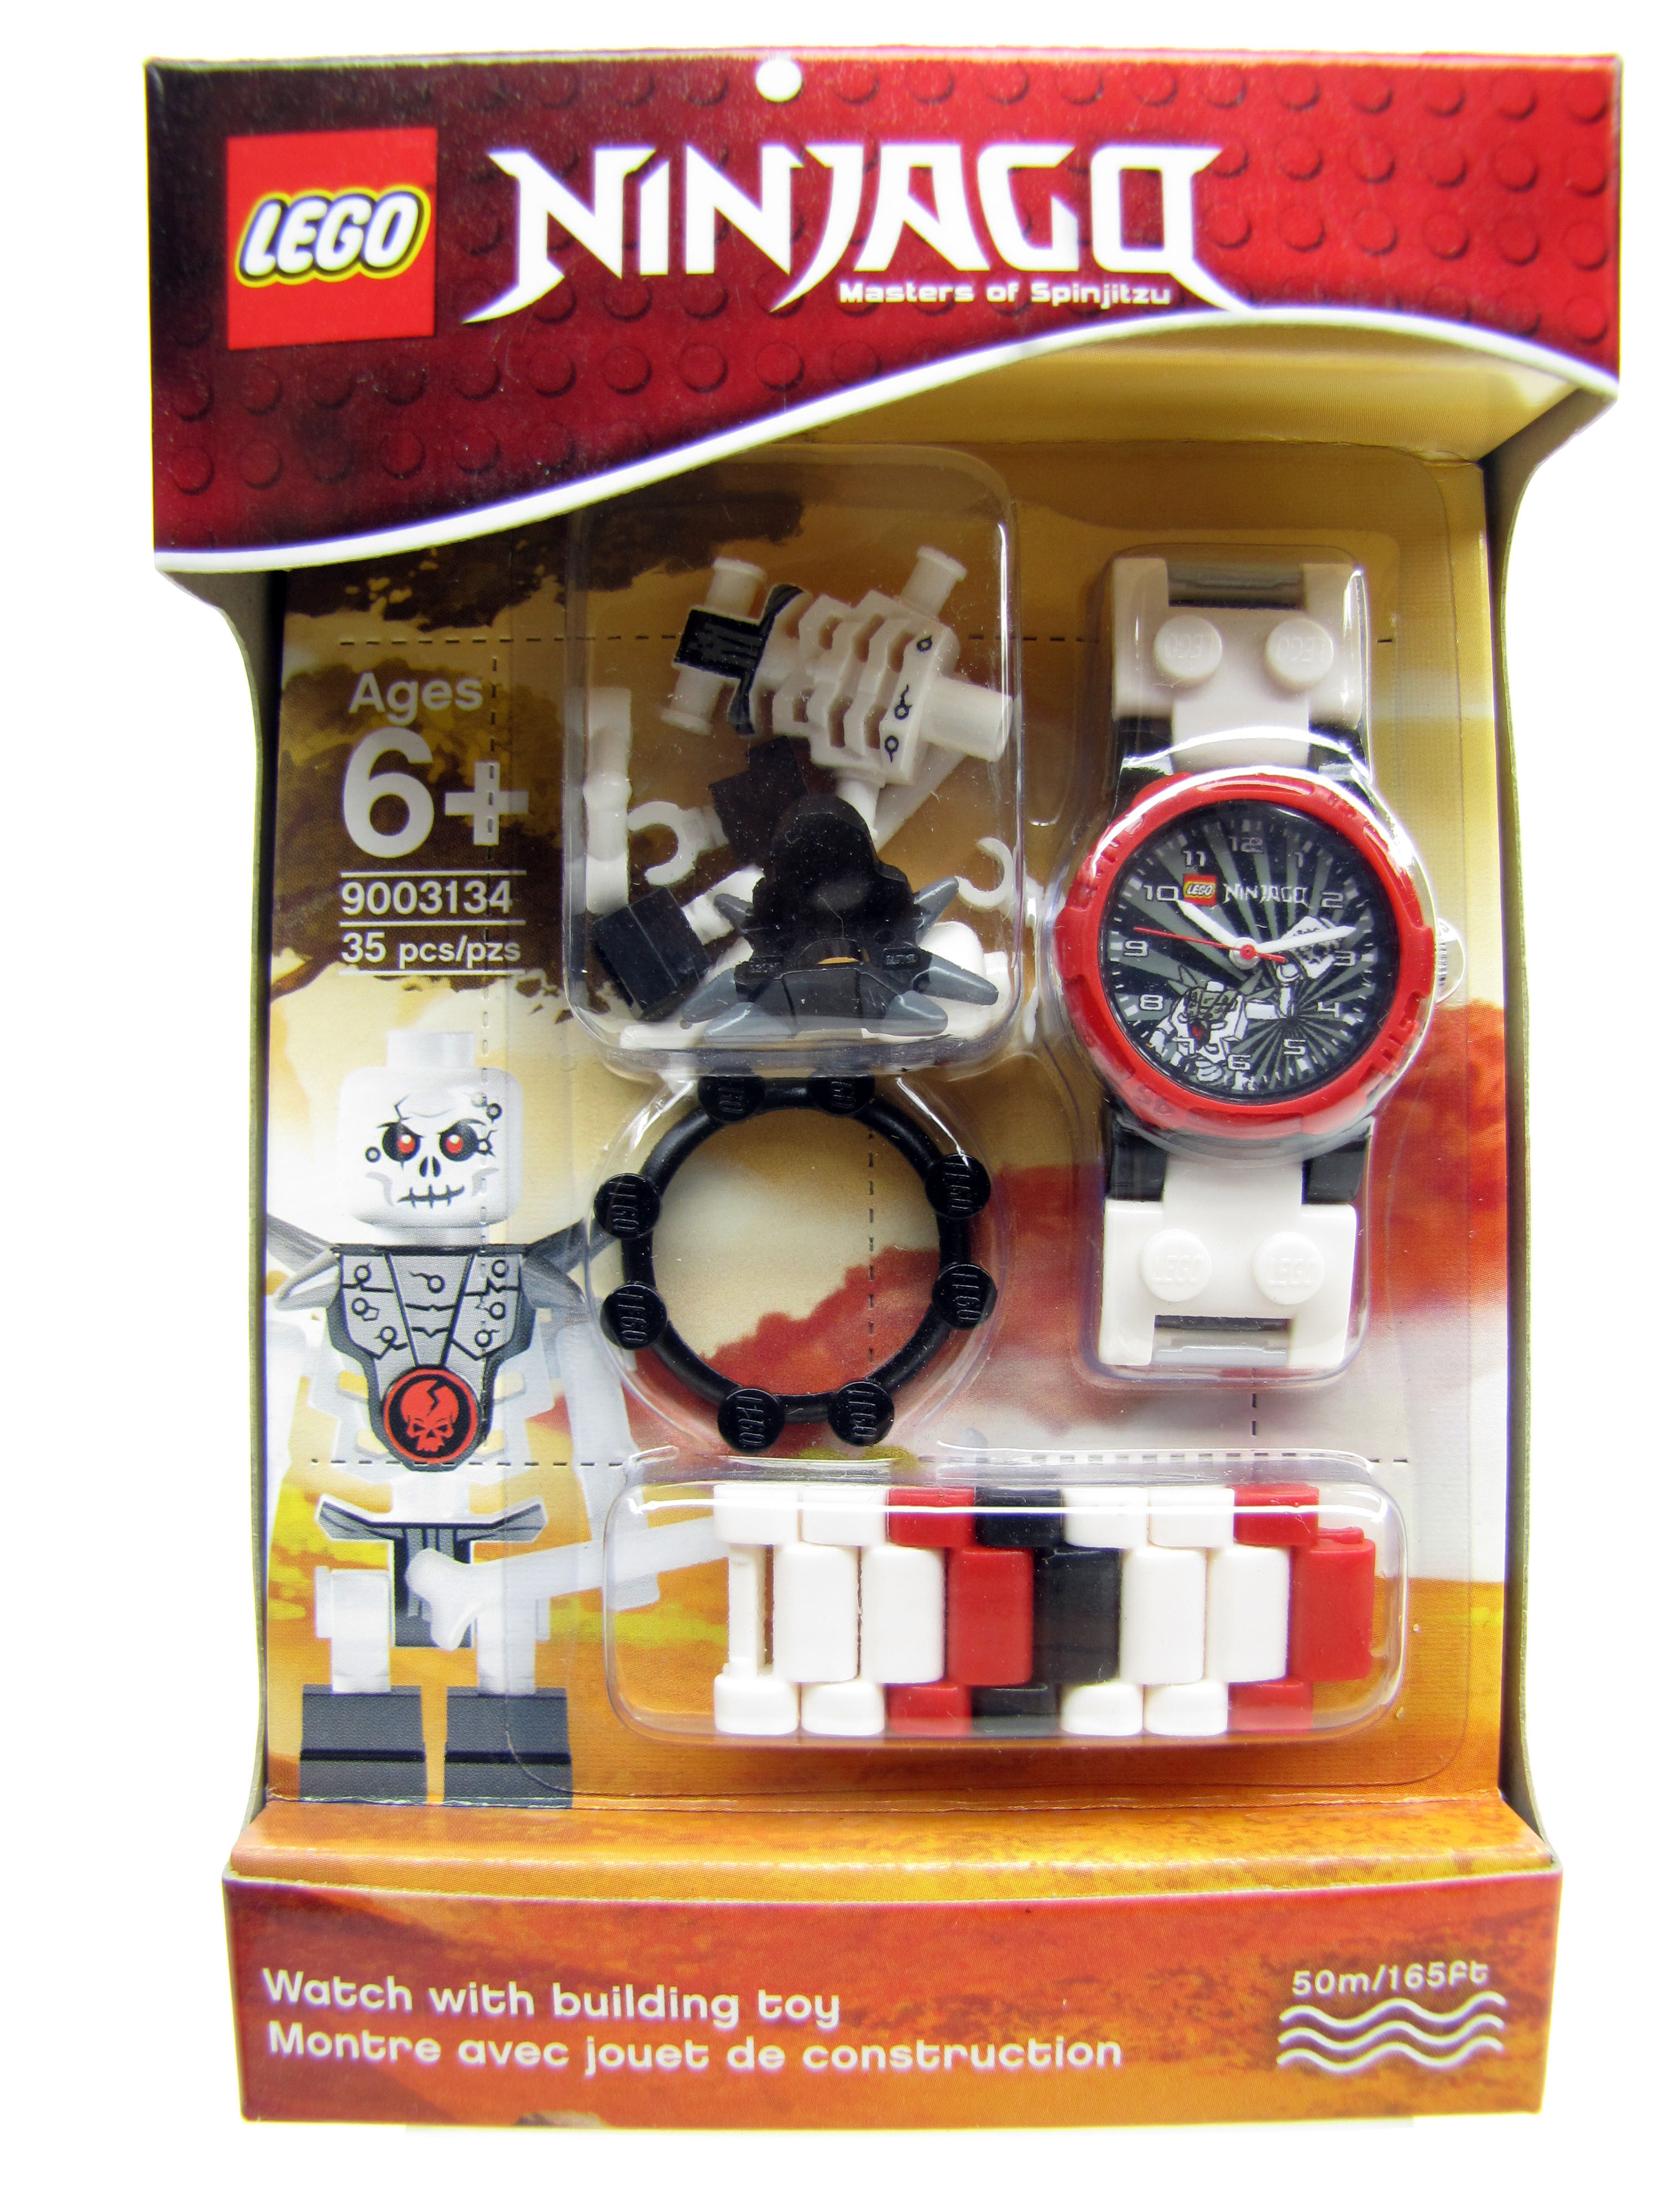 LEGO Ninjago Masters Spinjitzu Chopov Minifigure Watch NEW 90313